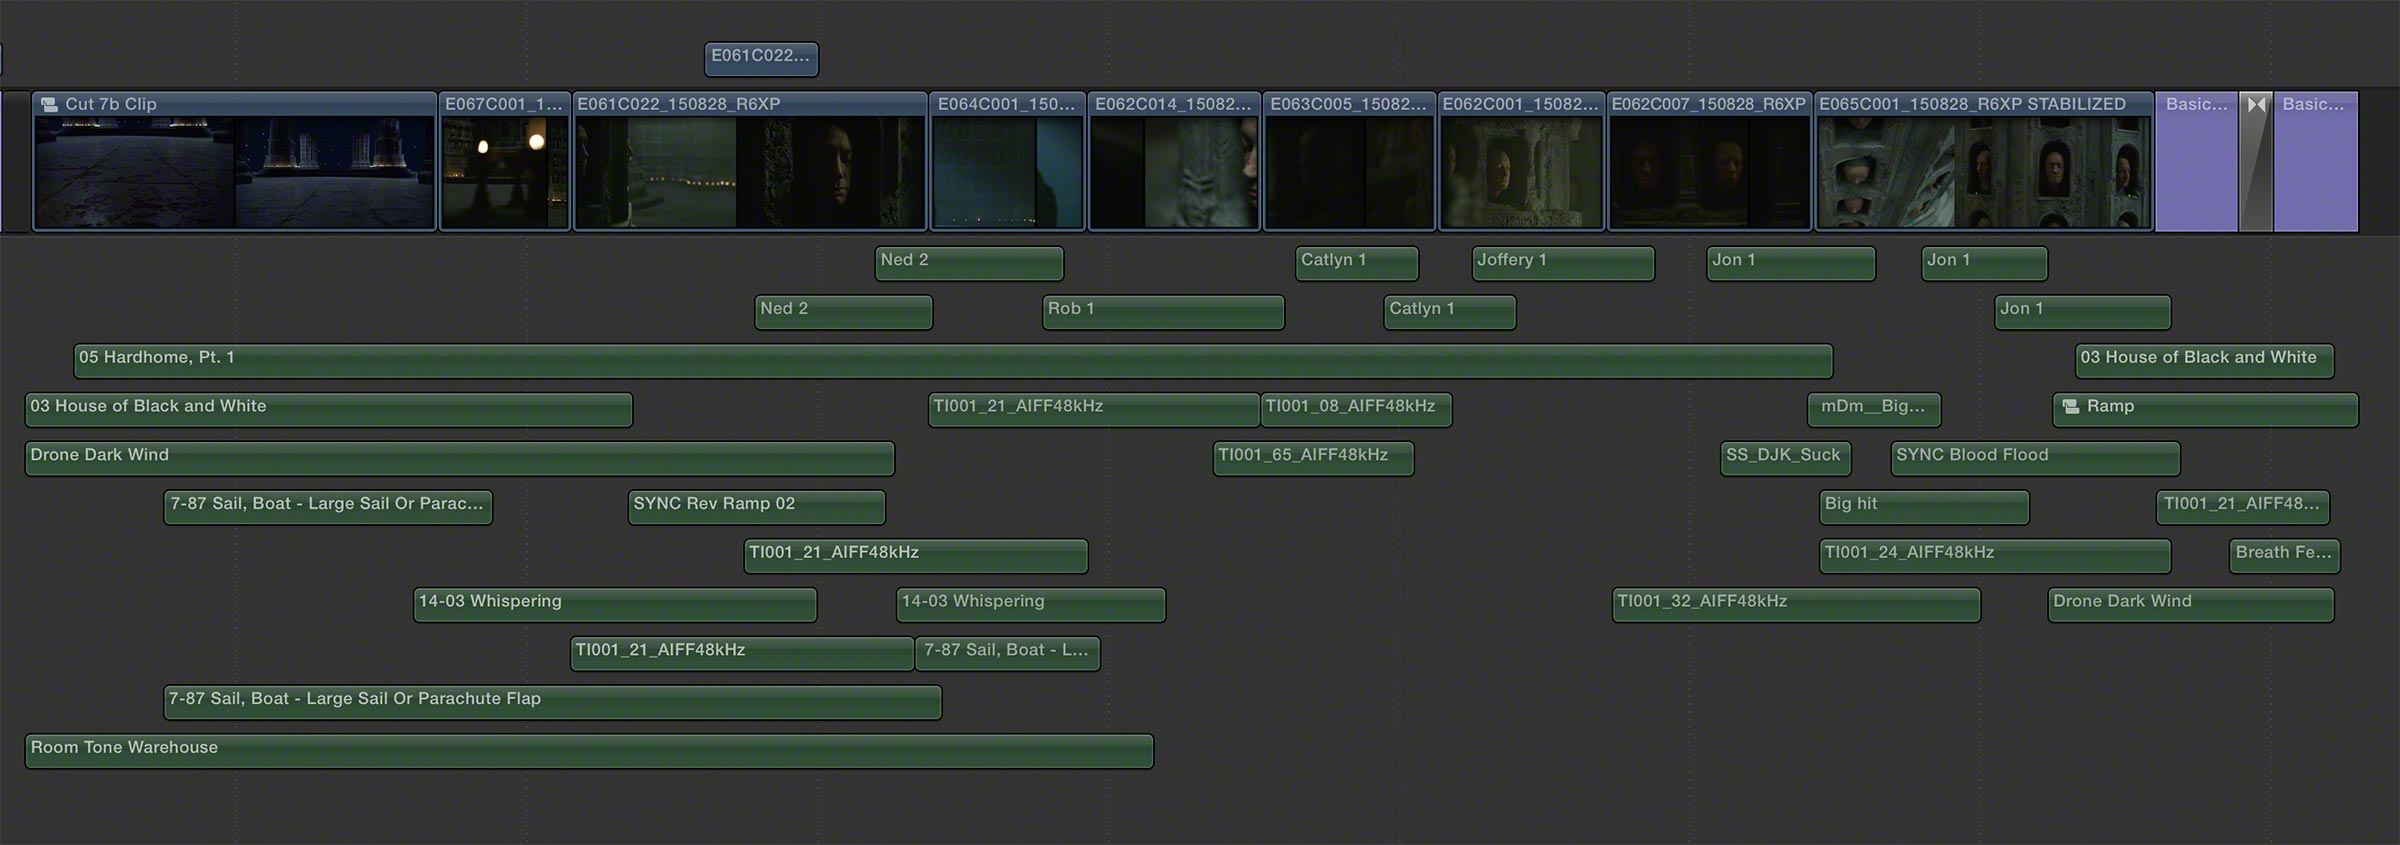 Game of Thrones Timeline FCPX